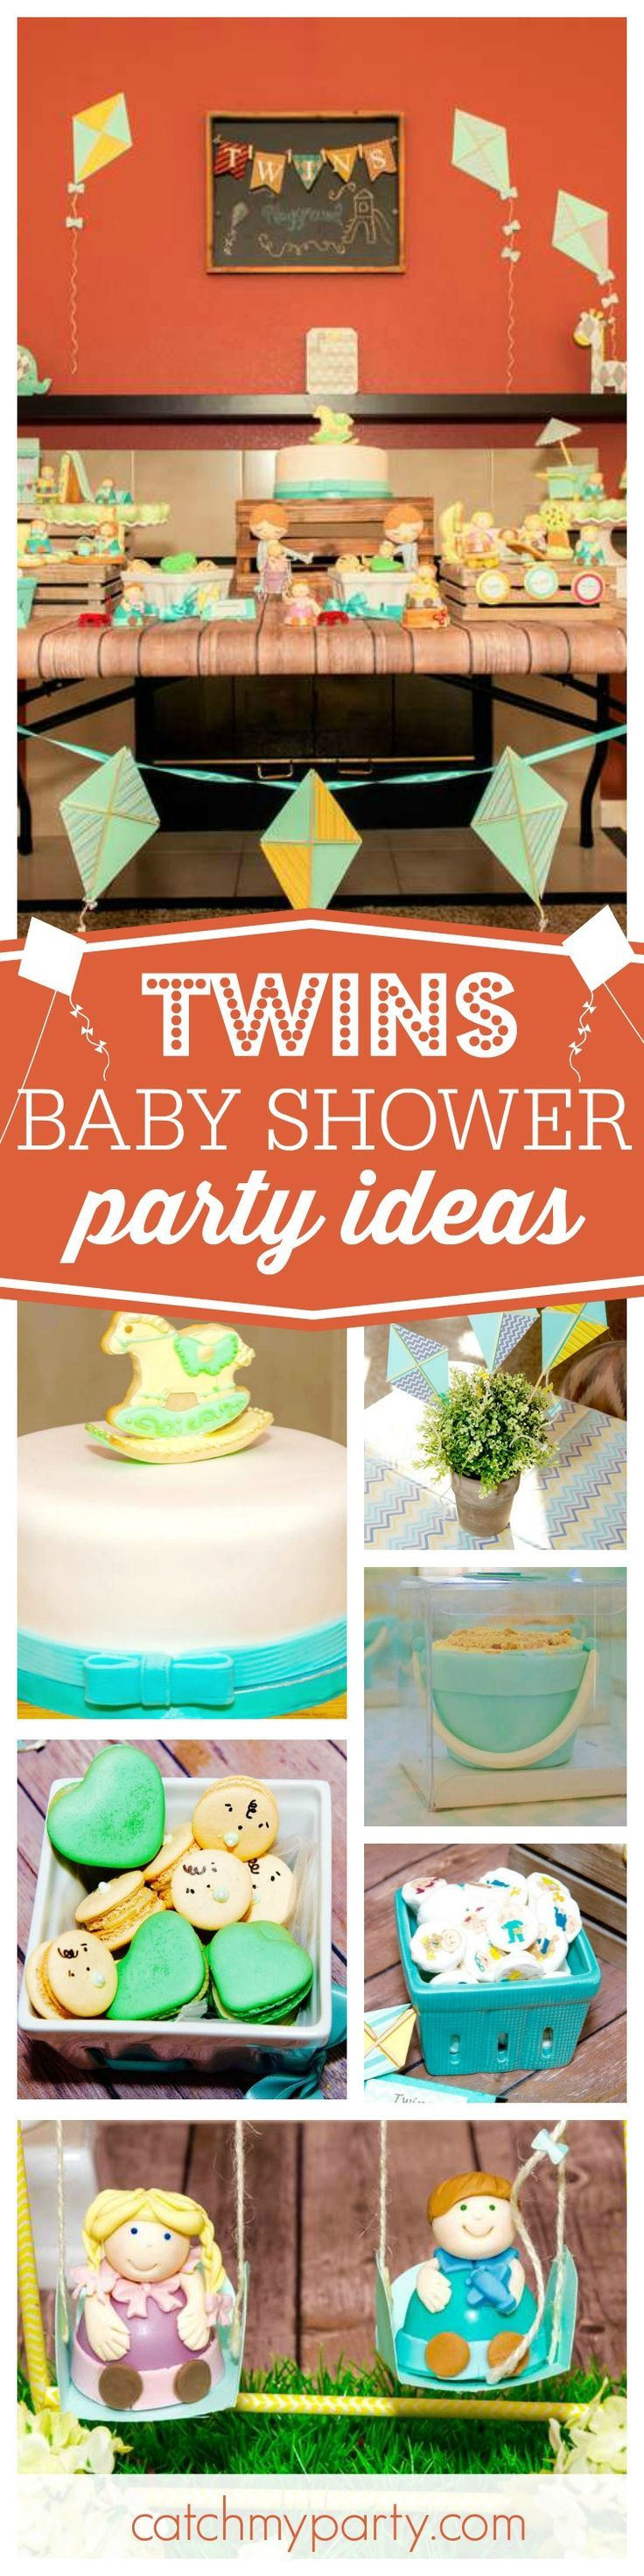 589 best Party Ideas Baby Shower images on Pinterest